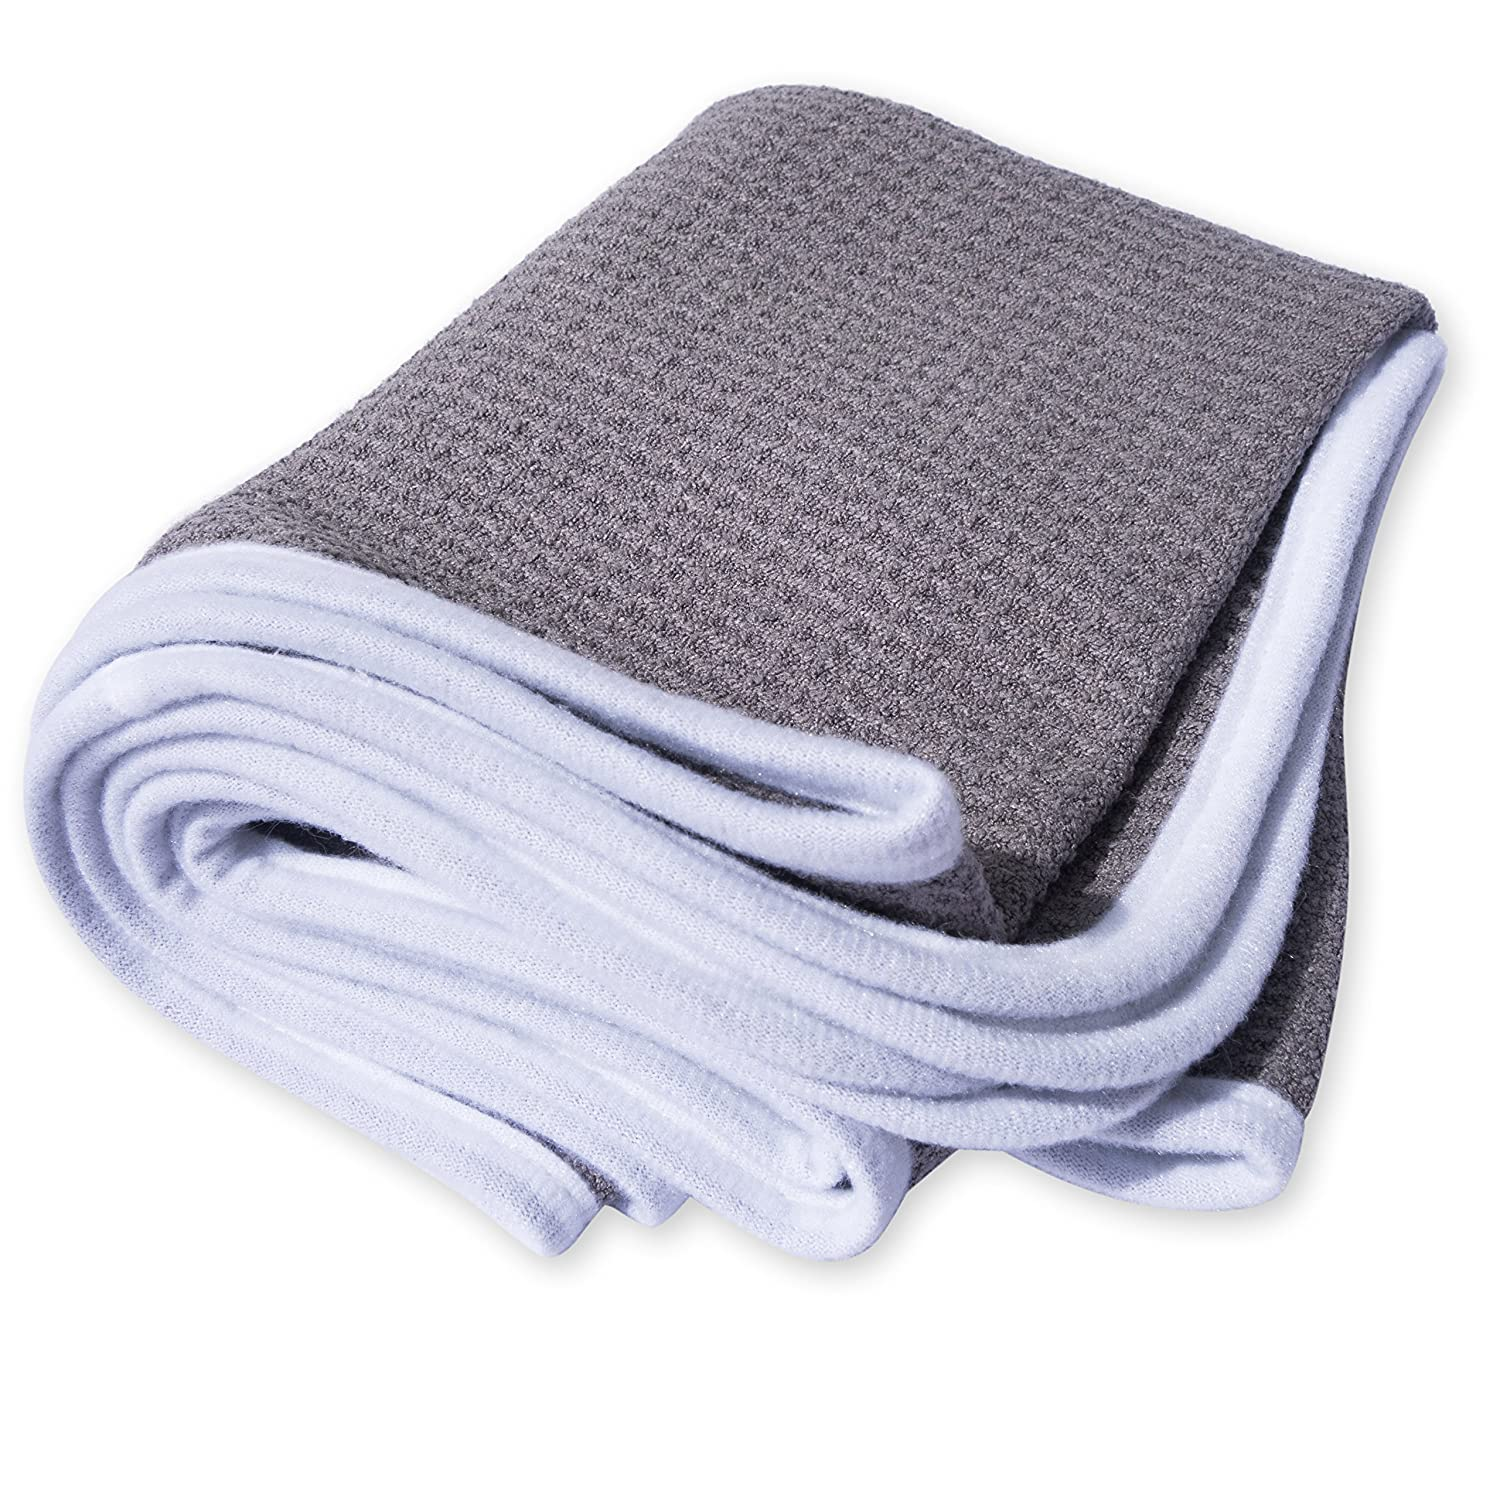 The Best Gym Towels for Sweat